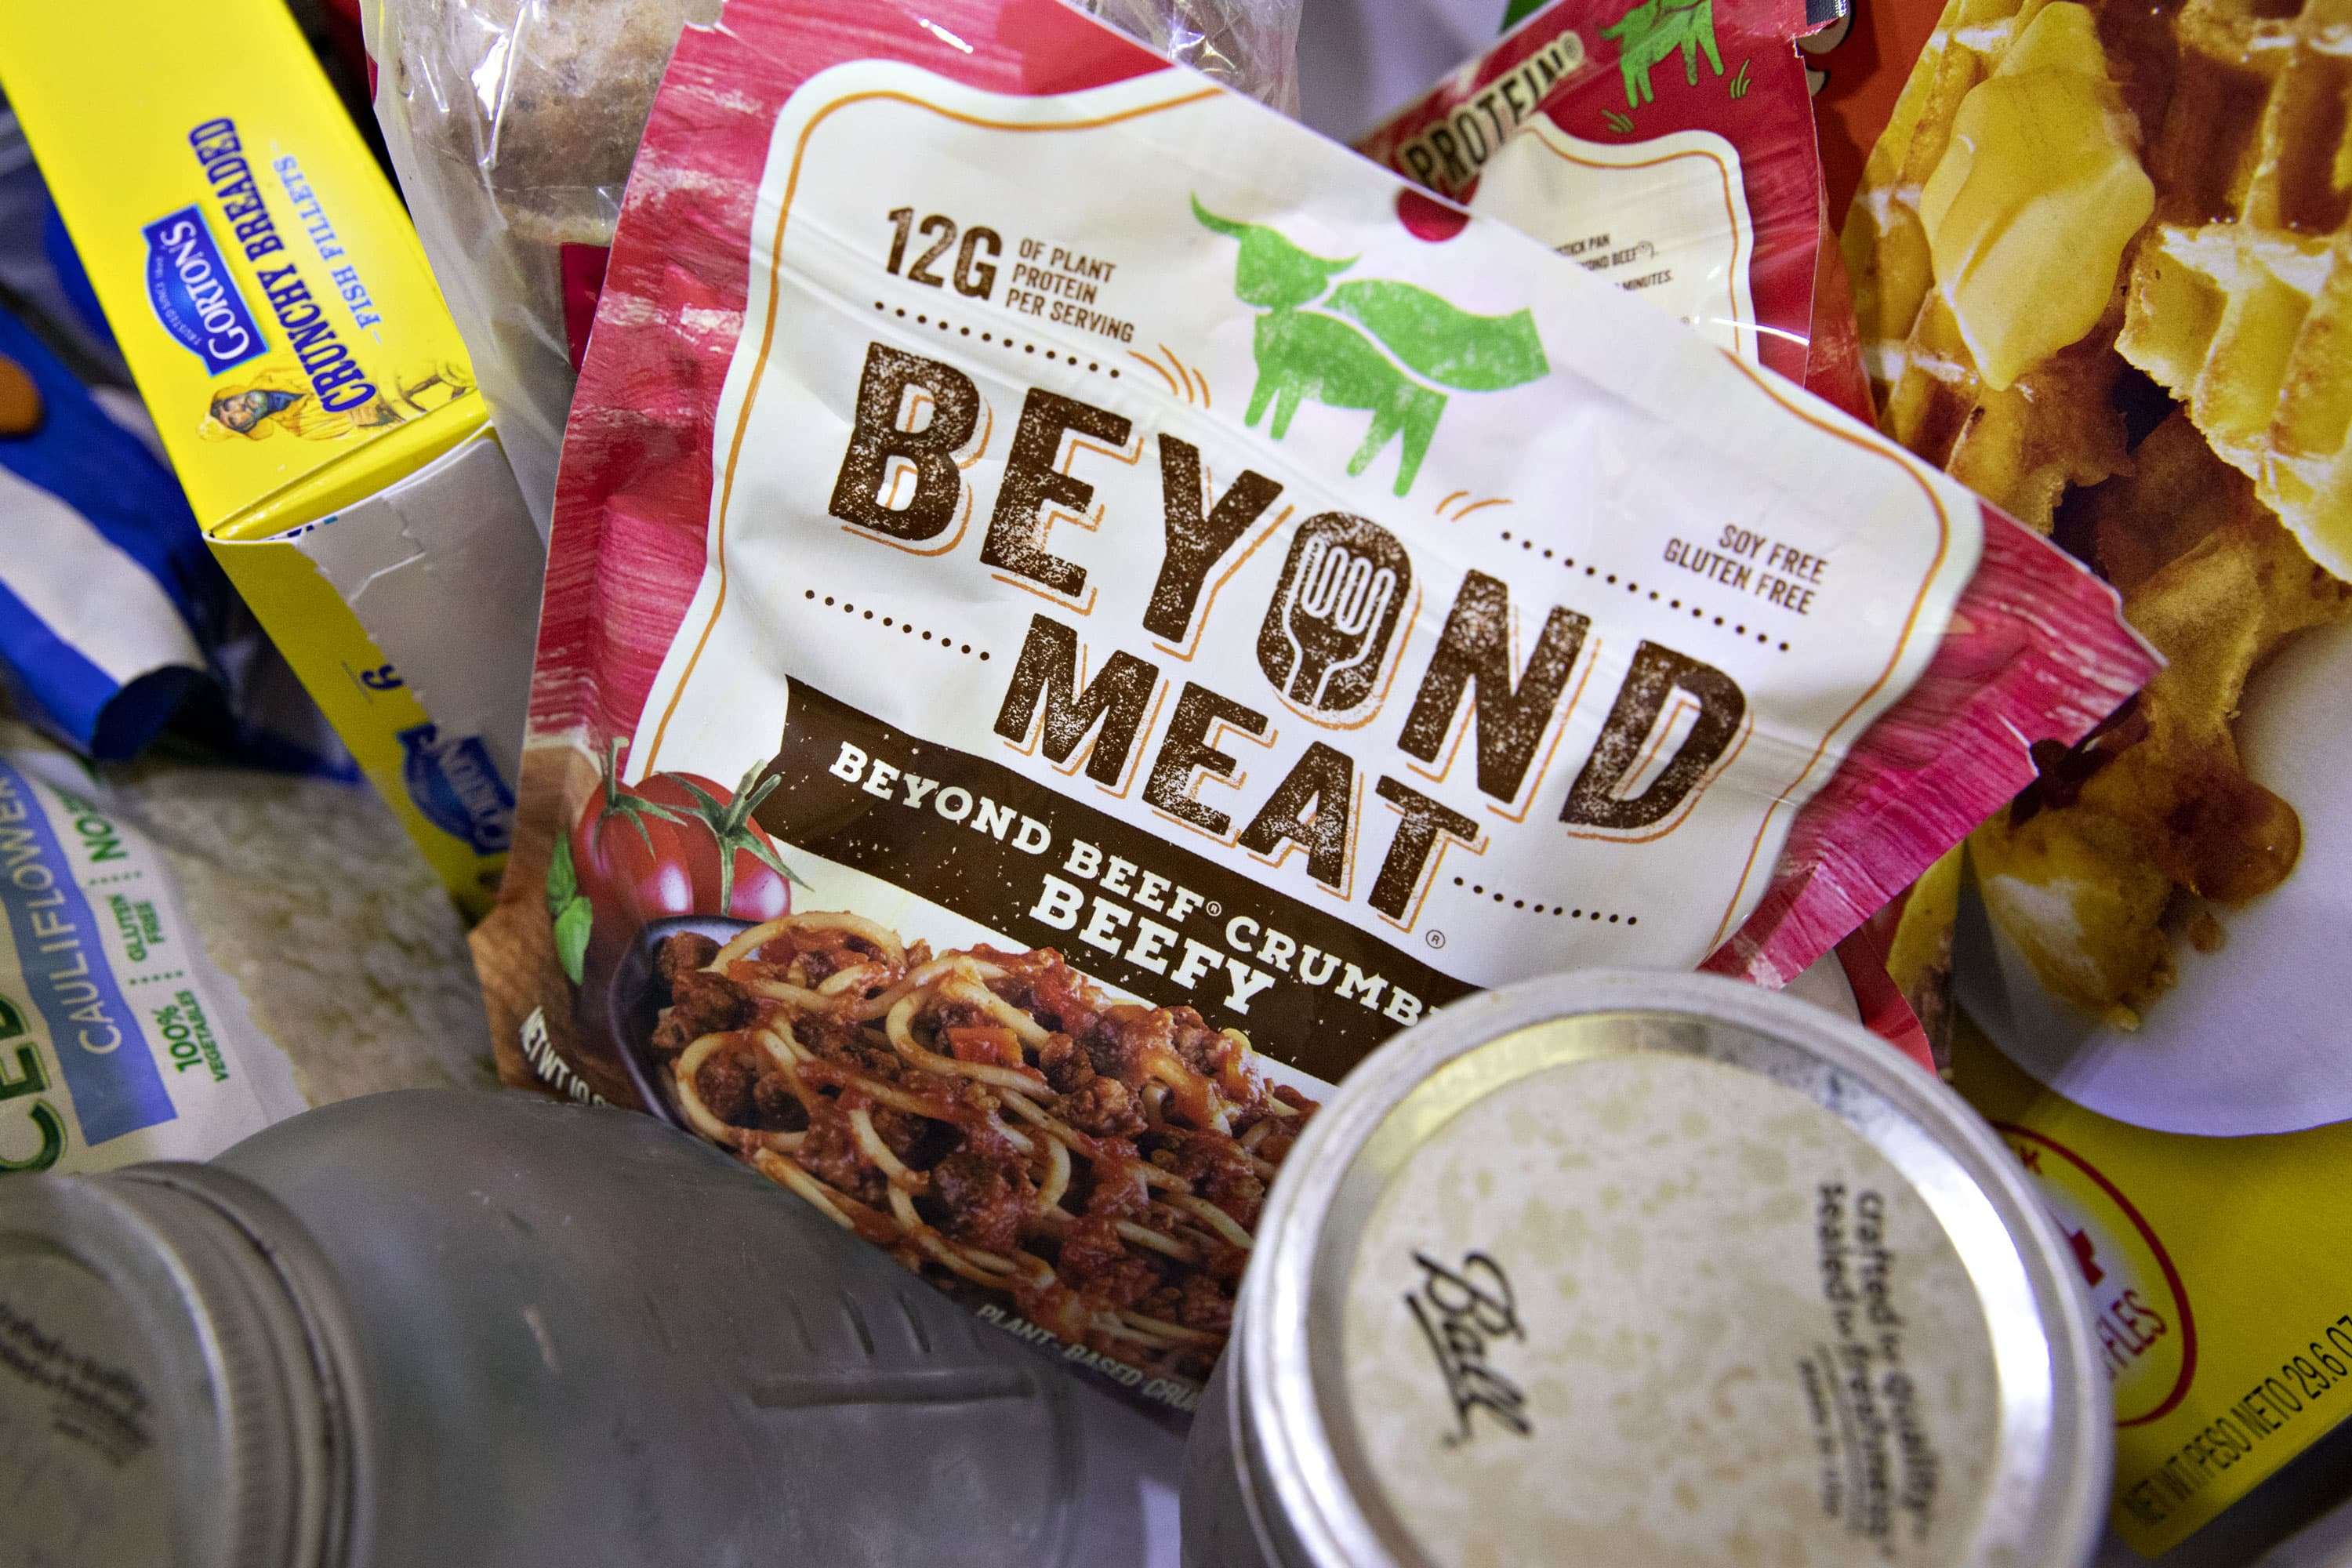 For Beyond Meat, breaching this level would be 'very, very bearish,' says analyst